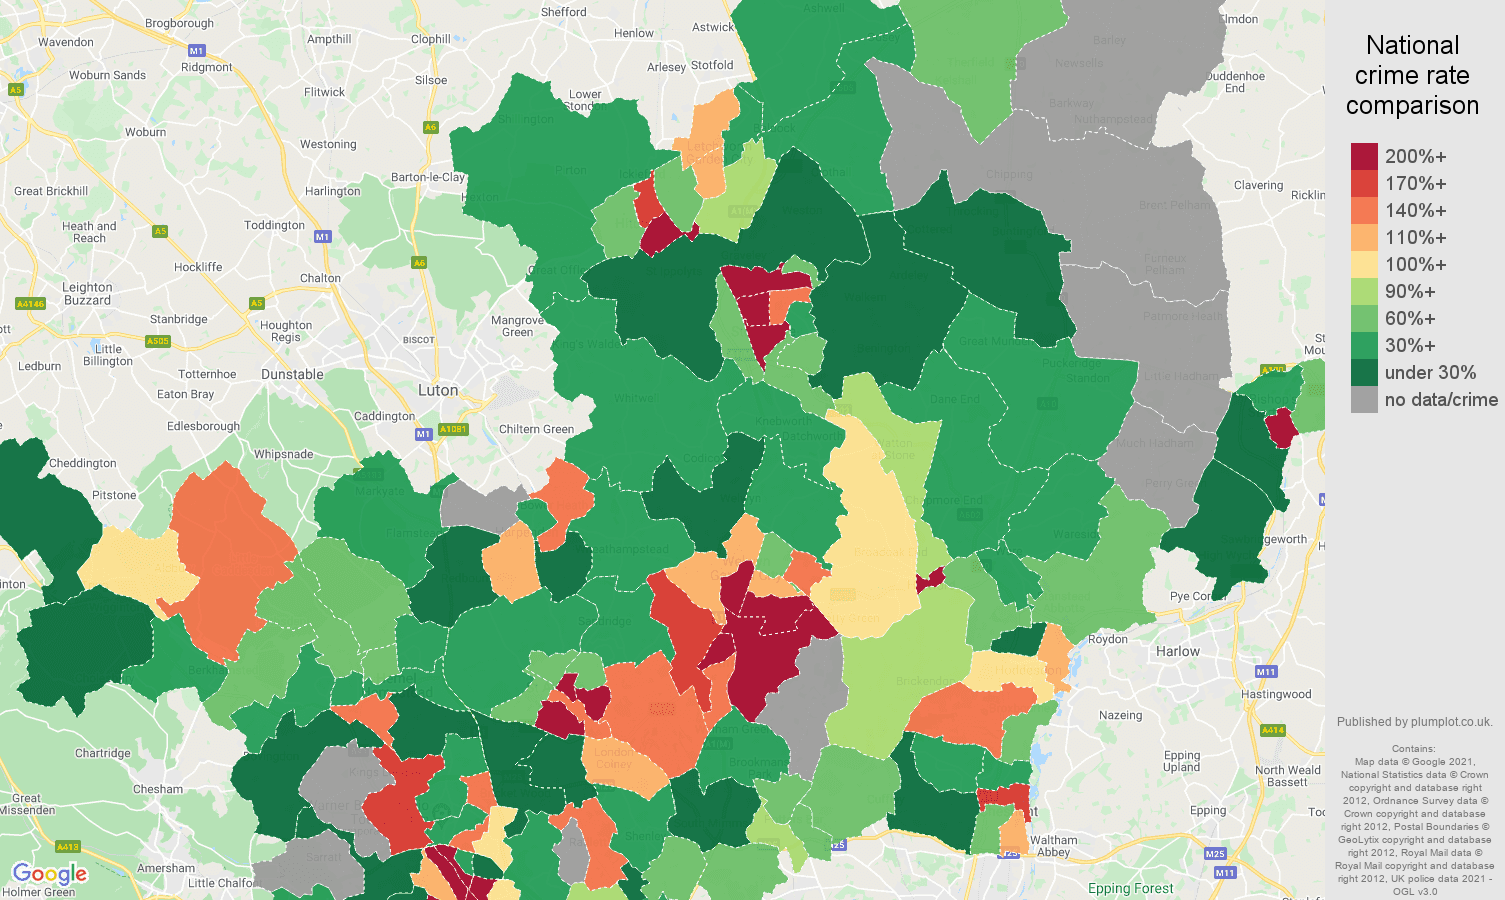 Hertfordshire bicycle theft crime rate comparison map